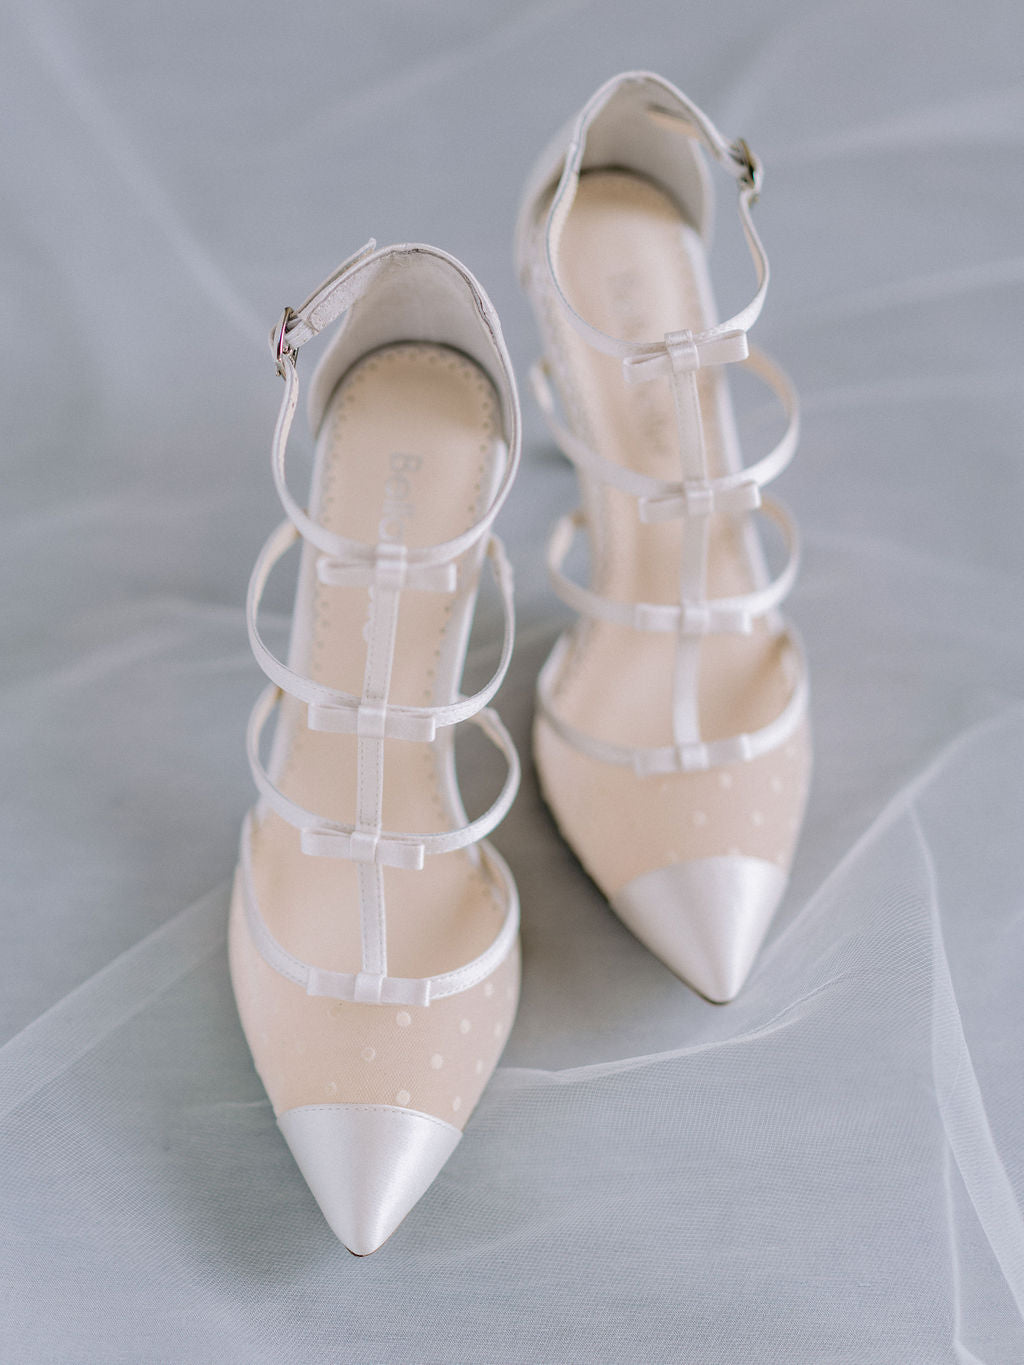 bella belle bridal trend polka dot wedding shoes 2020